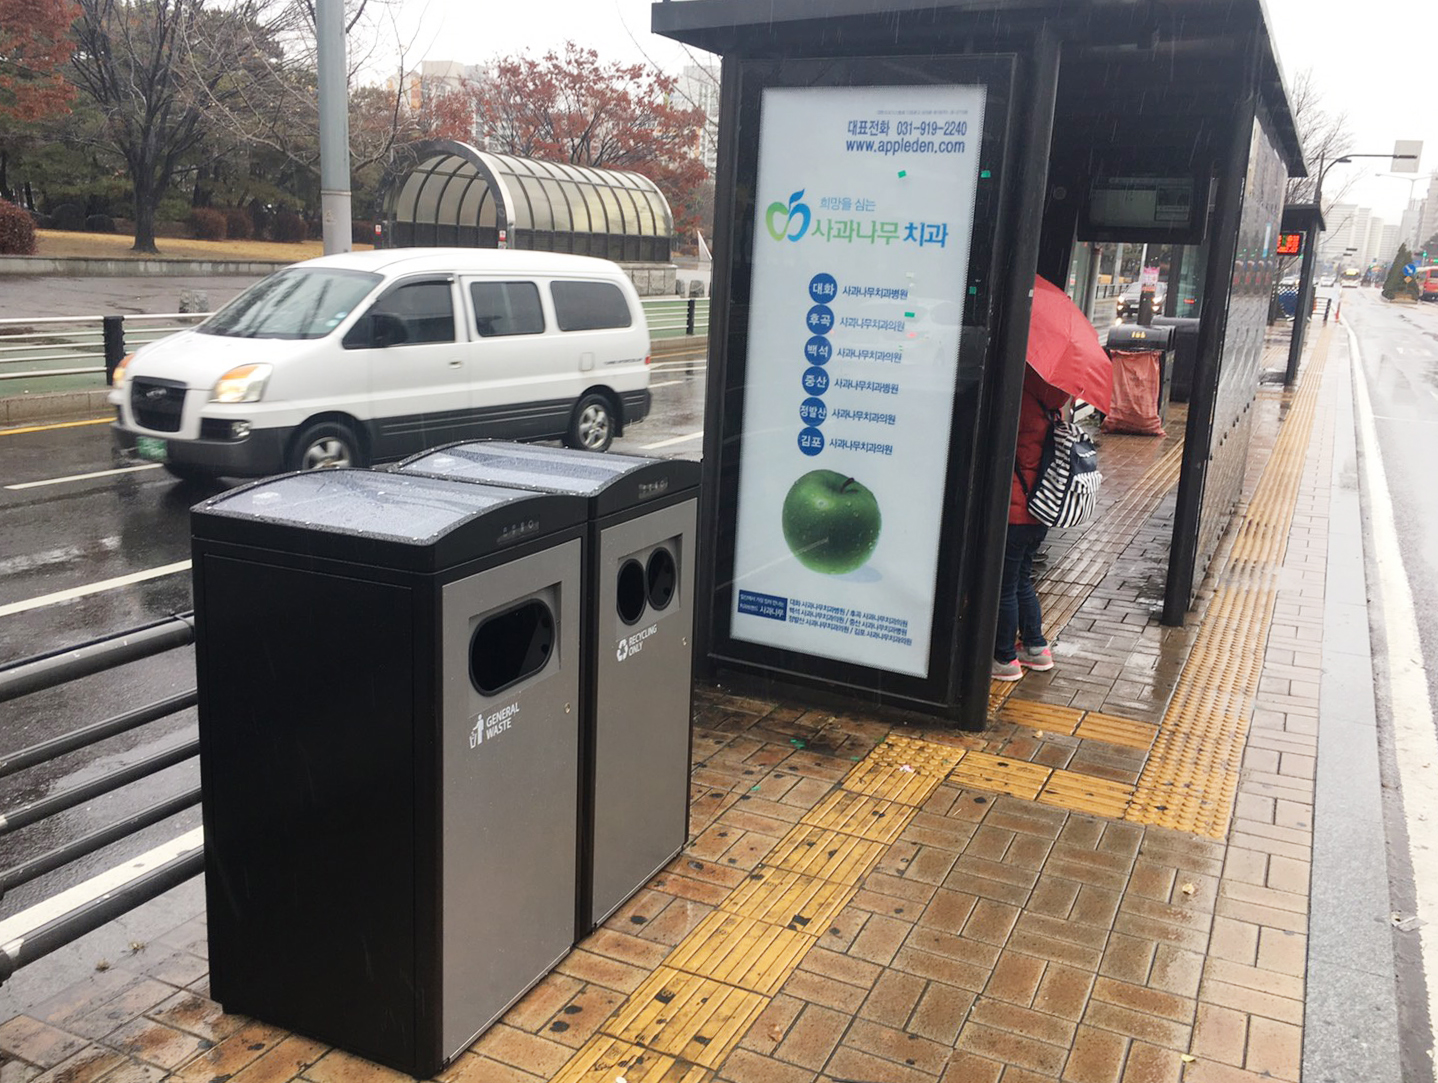 Smart solar-powered waste compacting bins in Goyang, South Korea